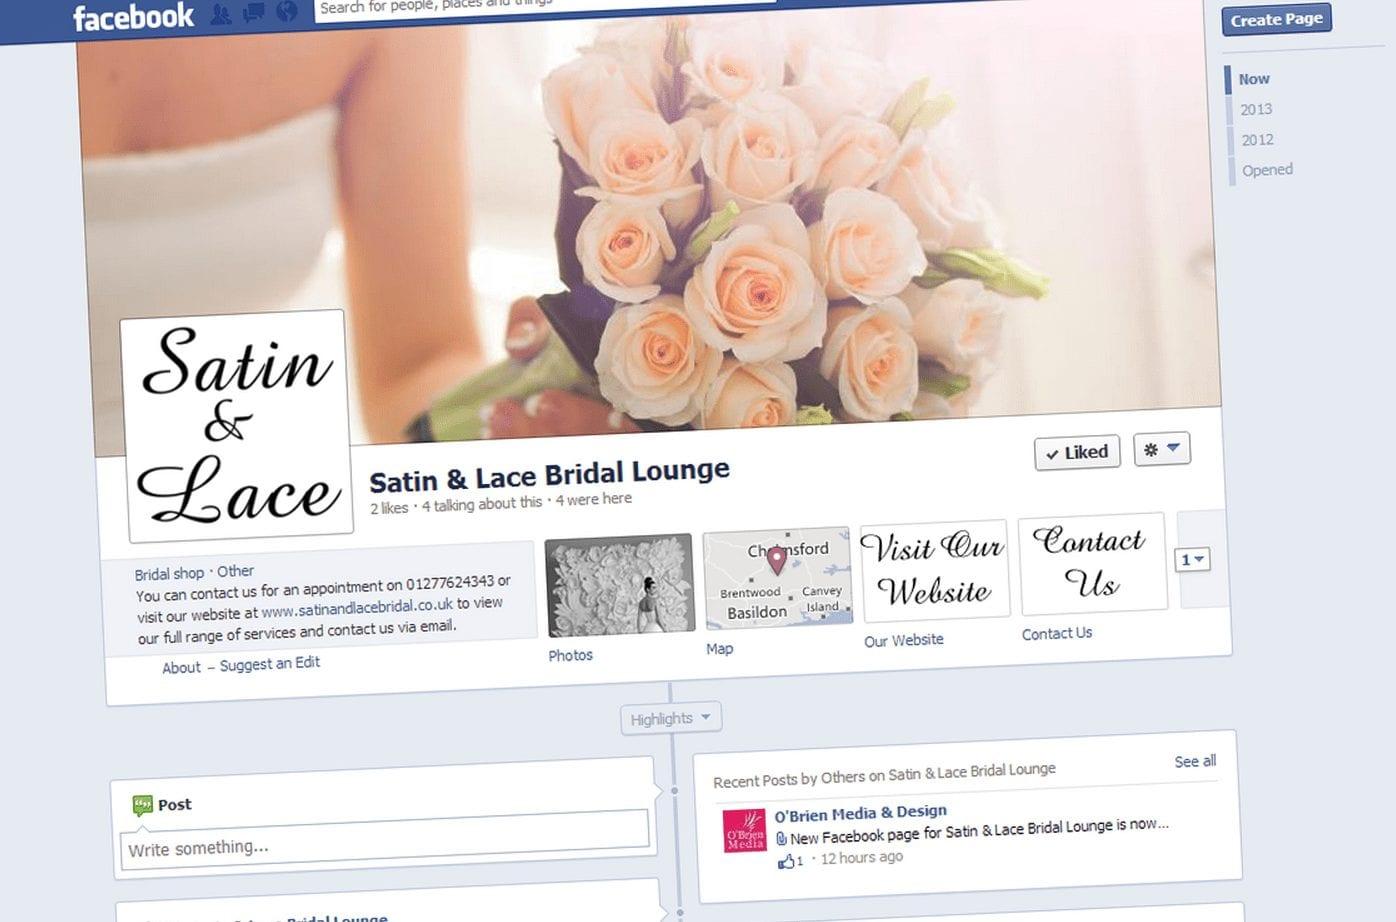 new-facebook-page-for-satin-lace-bridal-lounge.png